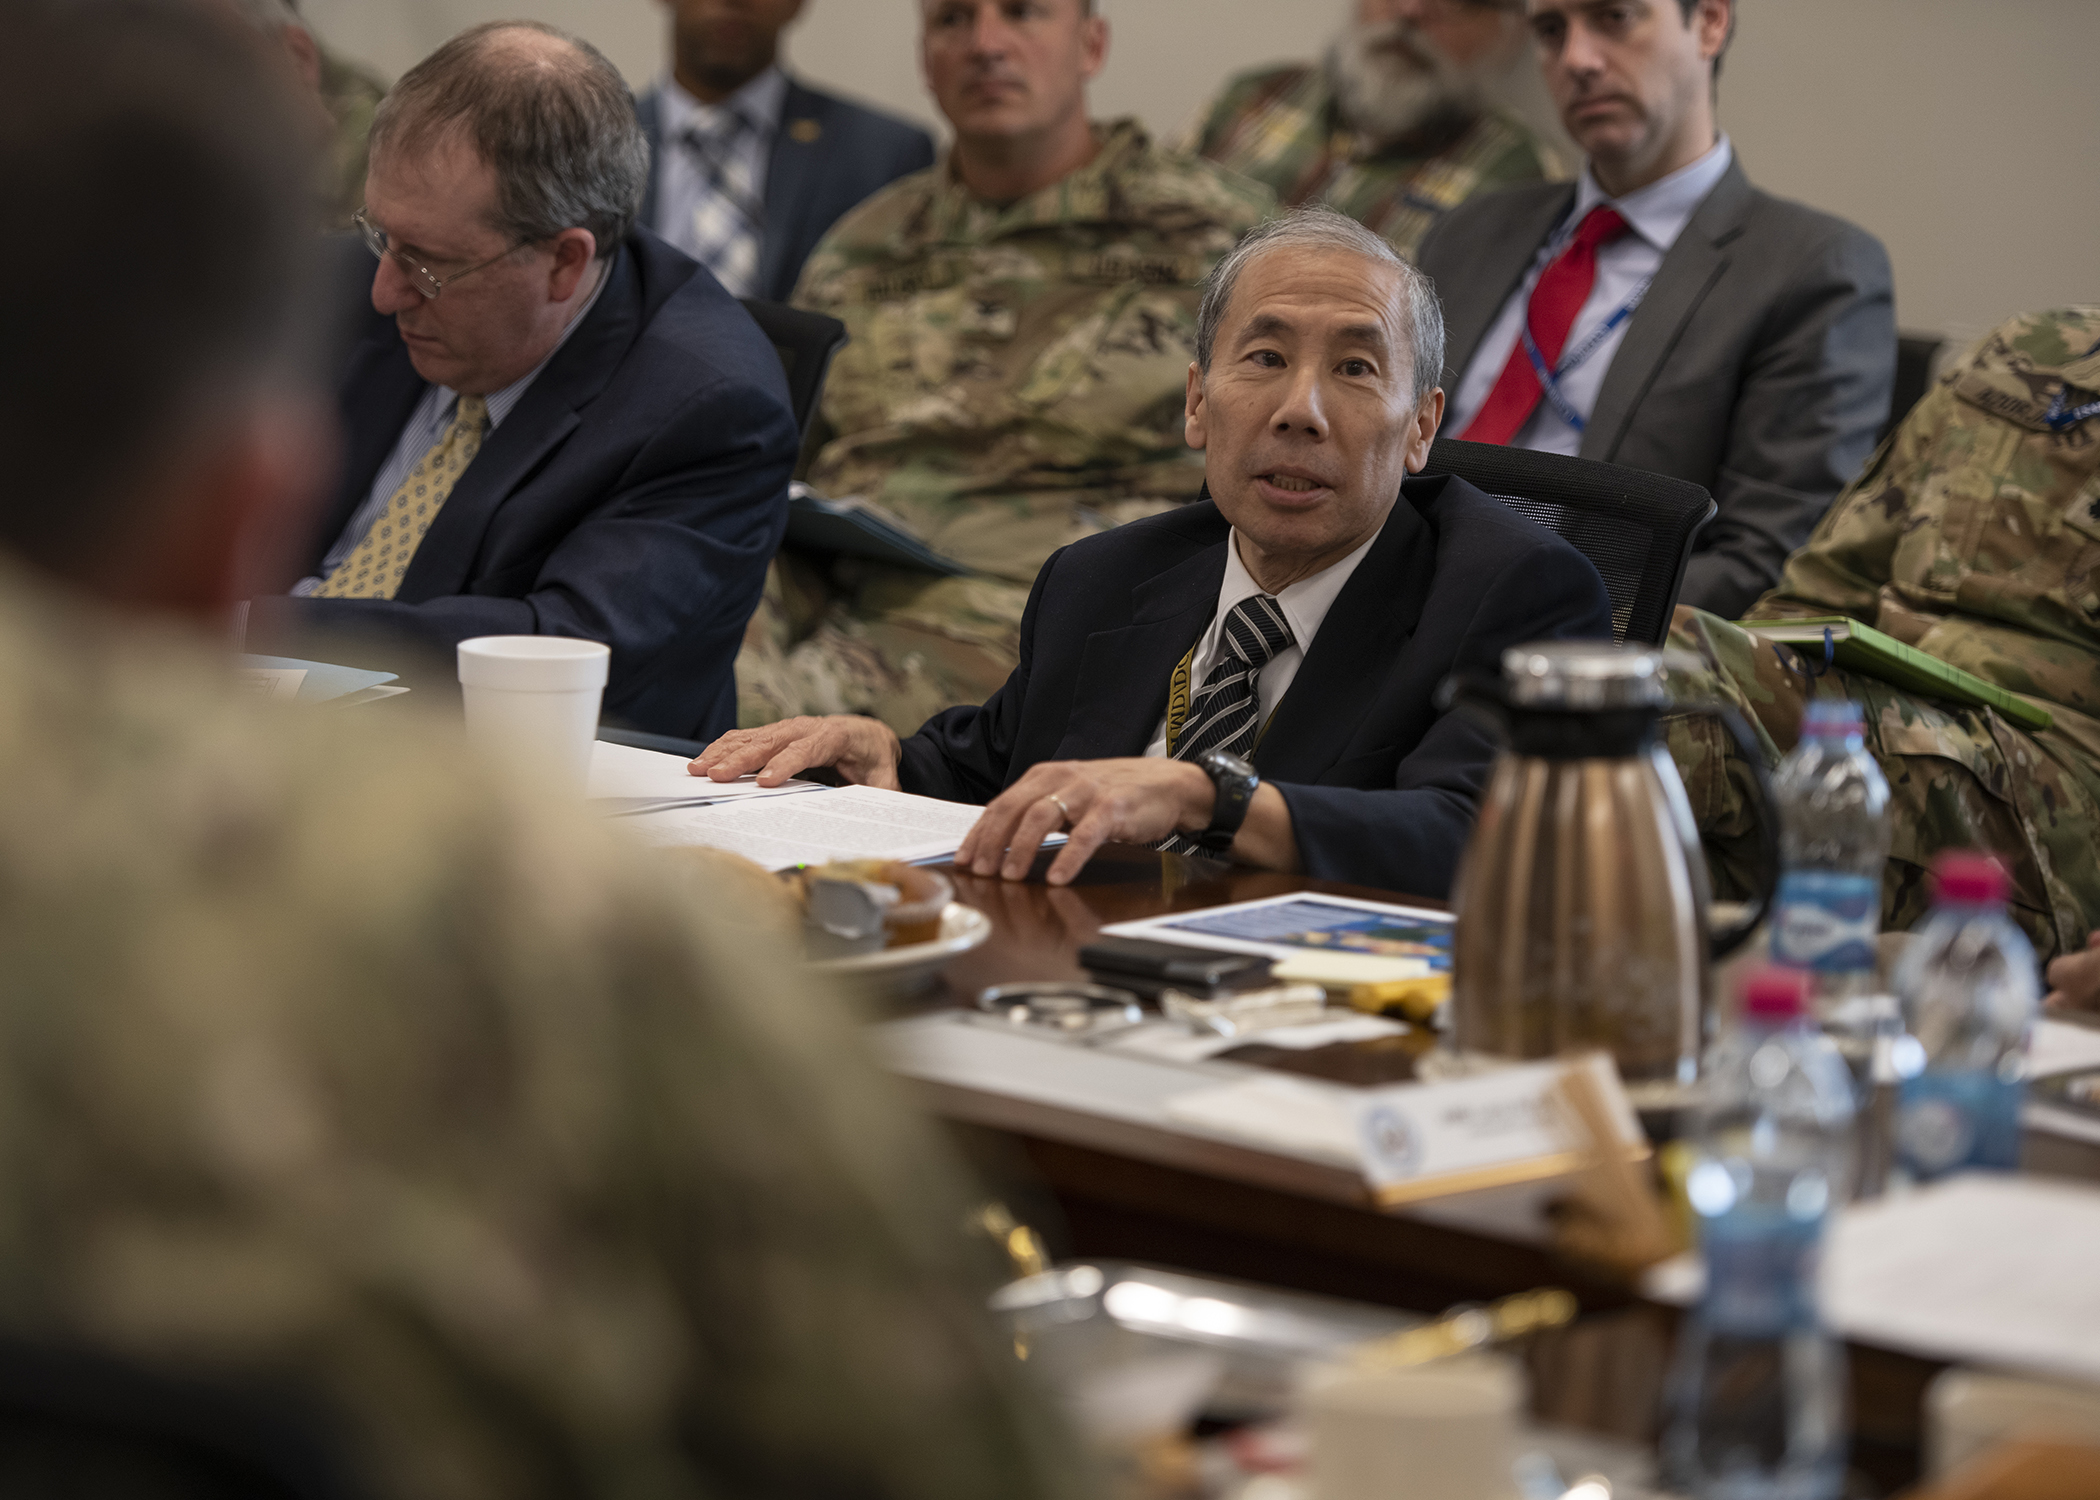 "Amb. Donald Yamamoto, U.S. Ambassador to Somalia, presents a briefing titled ""Triggers of Regional Instability"" during the Combined Joint Task Force-Horn of Africa (CJTF-HOA) East Africa Security Forum (EASF) at Camp Lemonnier, Djibouti, Dec. 11, 2018. The EASF is an annual opportunity for CJTF-HOA and interagency leaders to sync, assess and align efforts to develop synchronized courses of action that support common goals. (U.S. Air Force photo by Tech. Sgt. Shawn Nickel)"